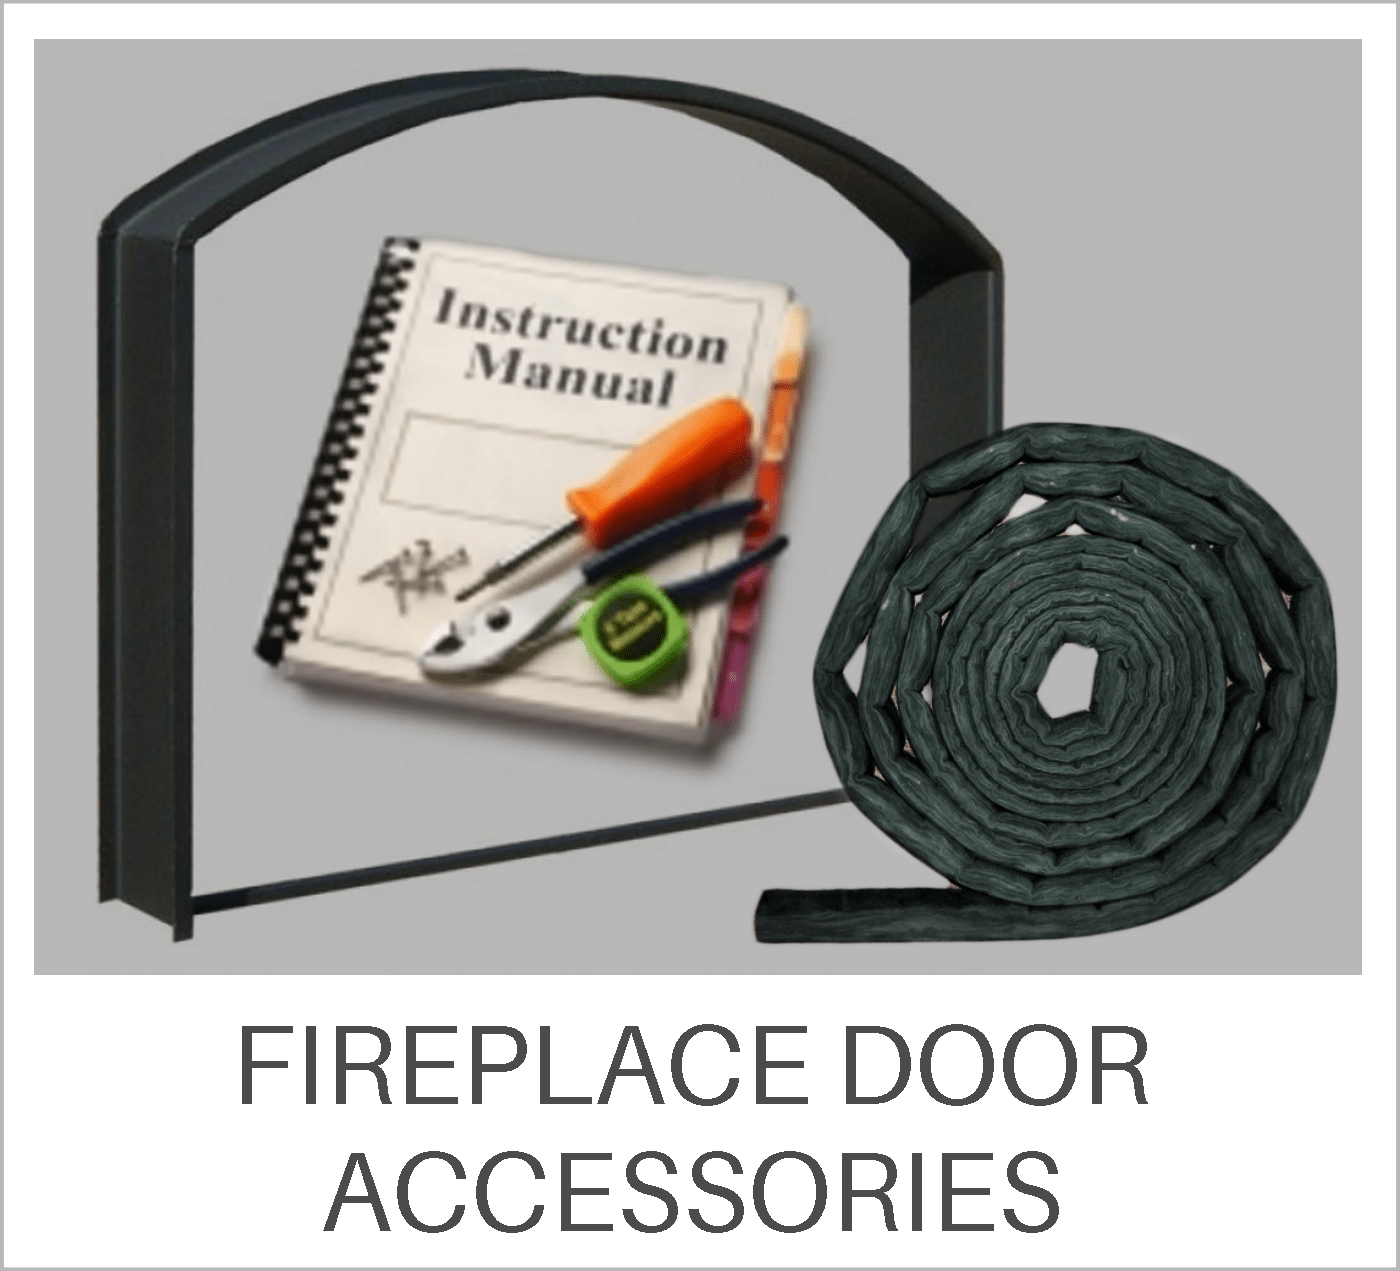 Fireplace Door Accessories Learning Center